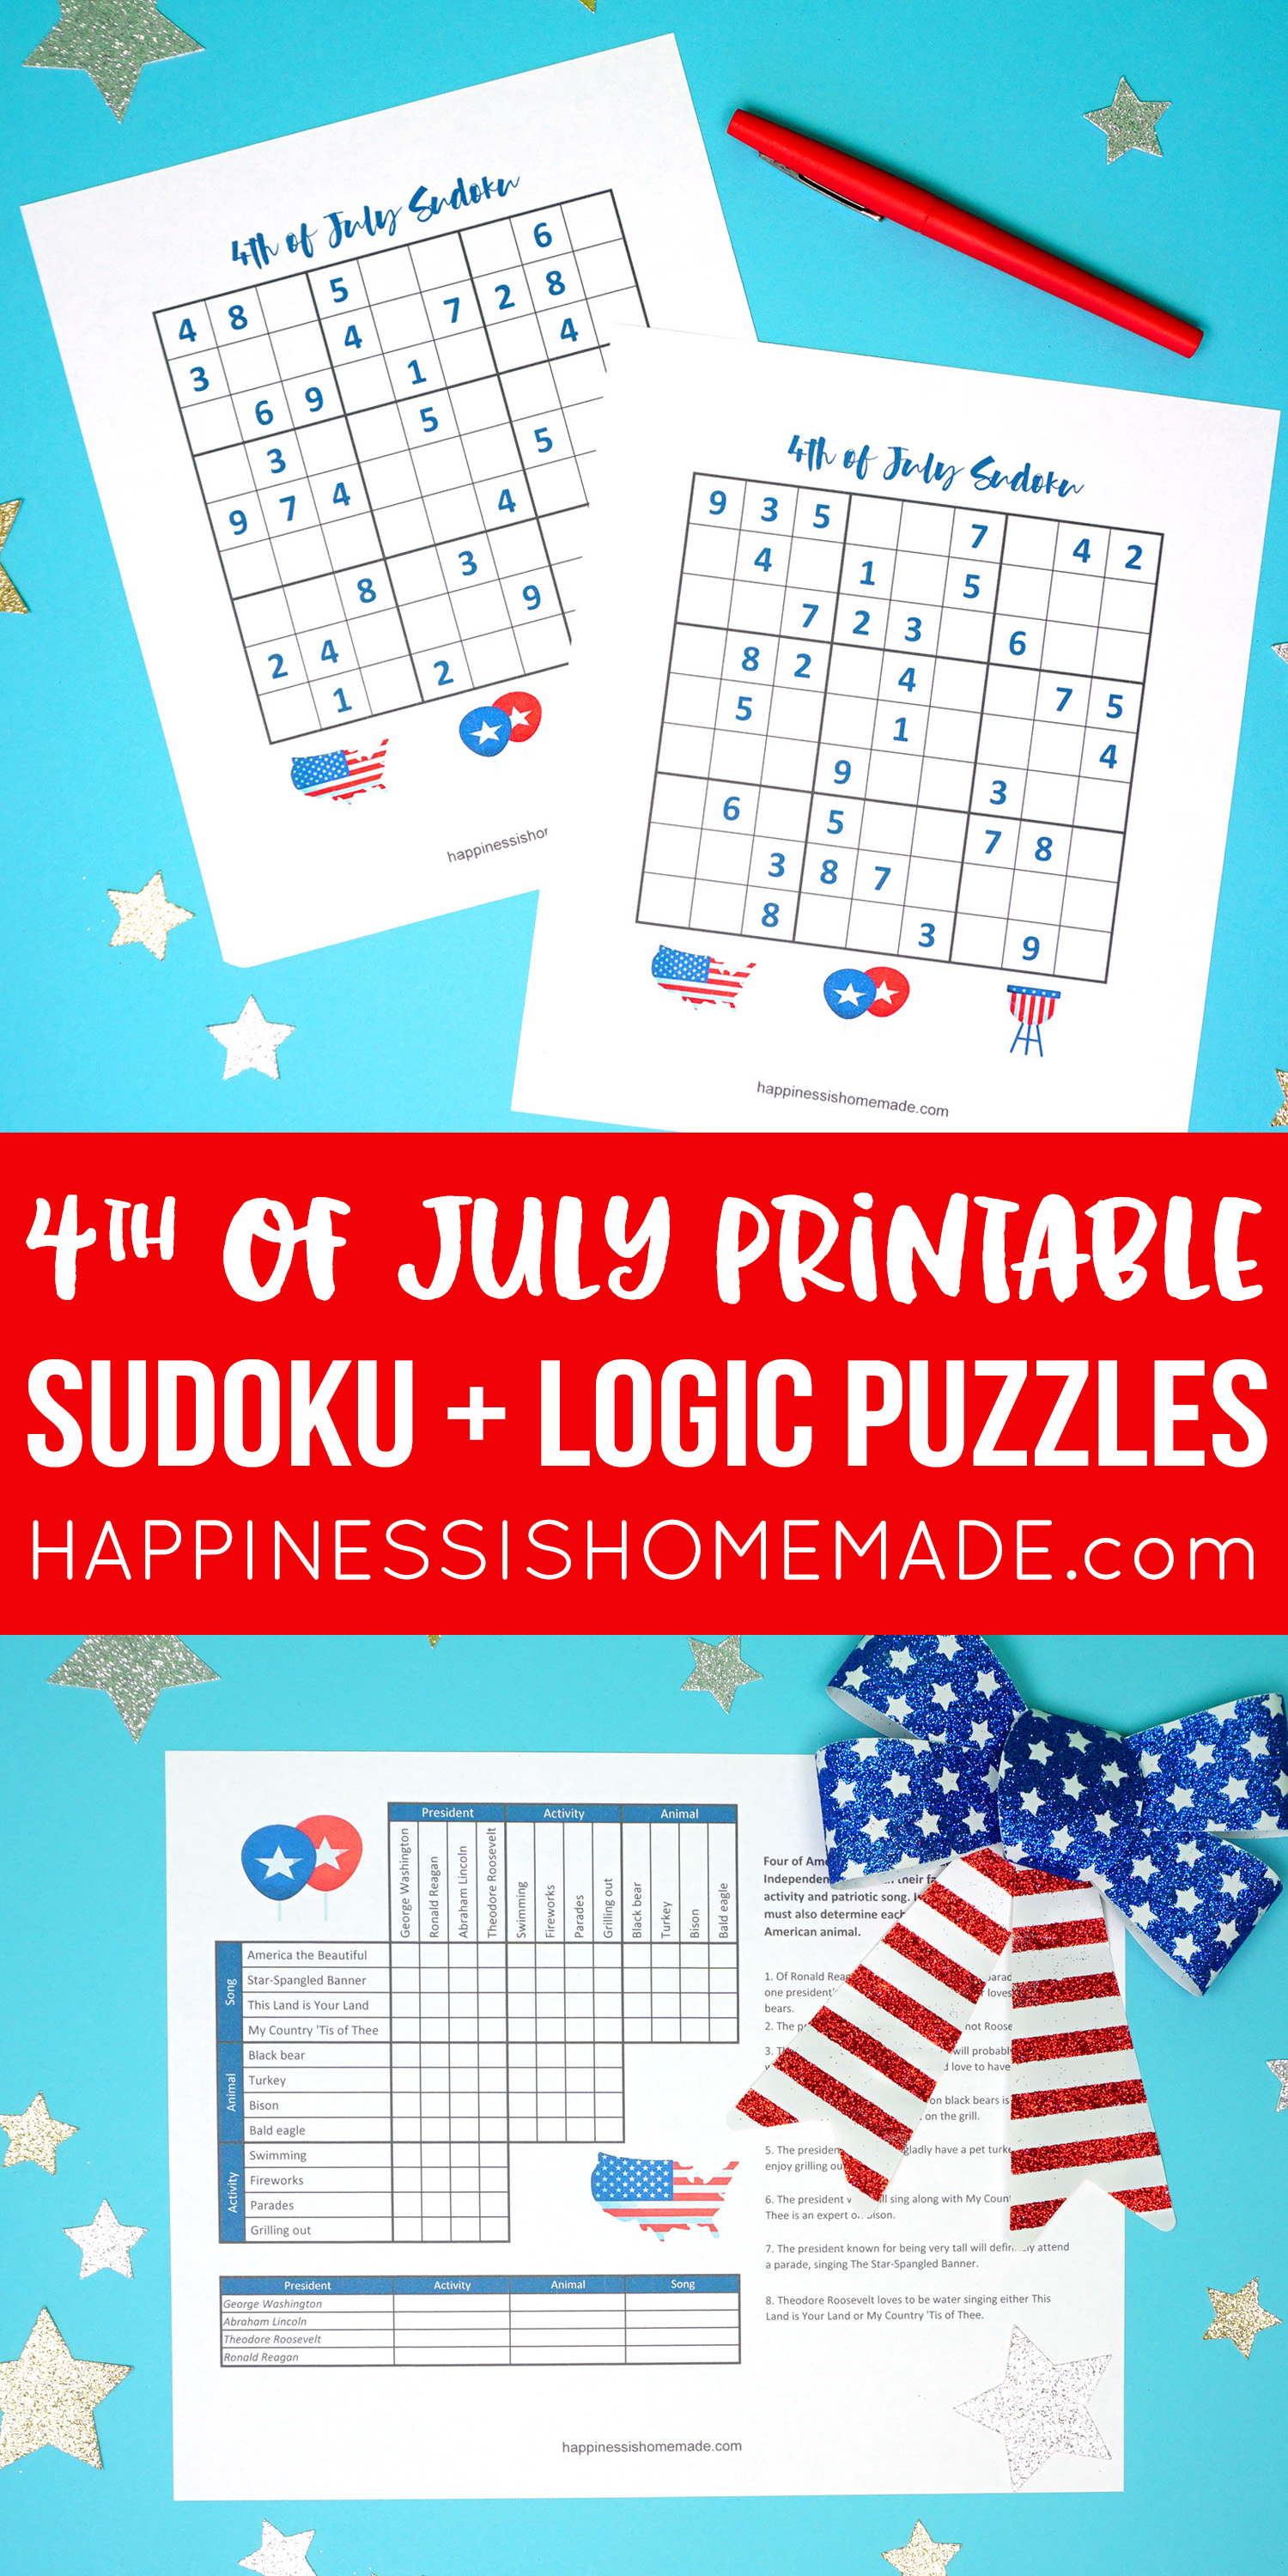 picture about Printable Sudoku Grid referred to as 4th of July Printable Sudoku Puzzles + Logic Puzzle